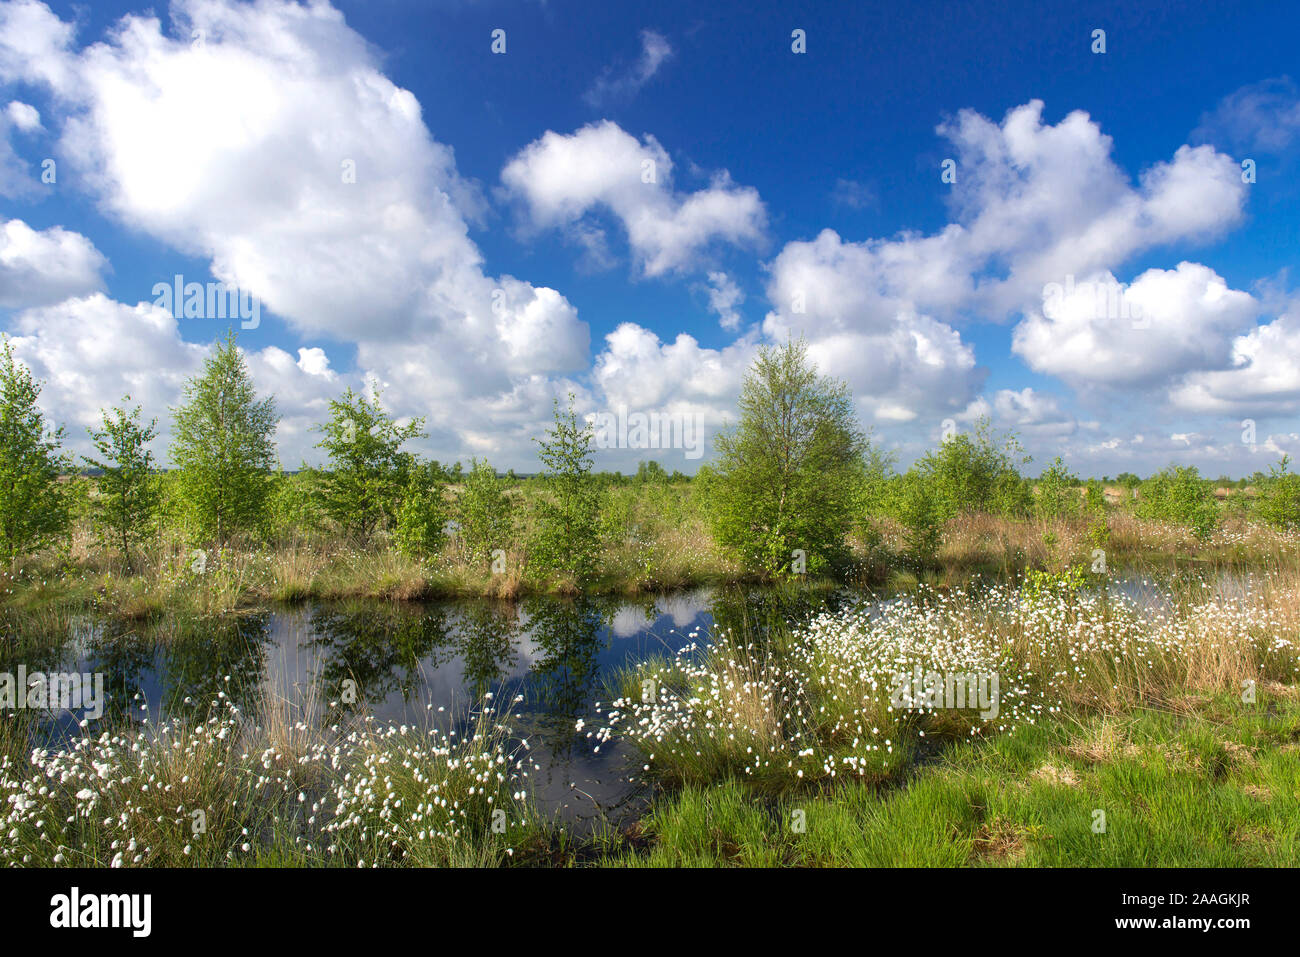 Landschaft mit Wollgras Stock Photo